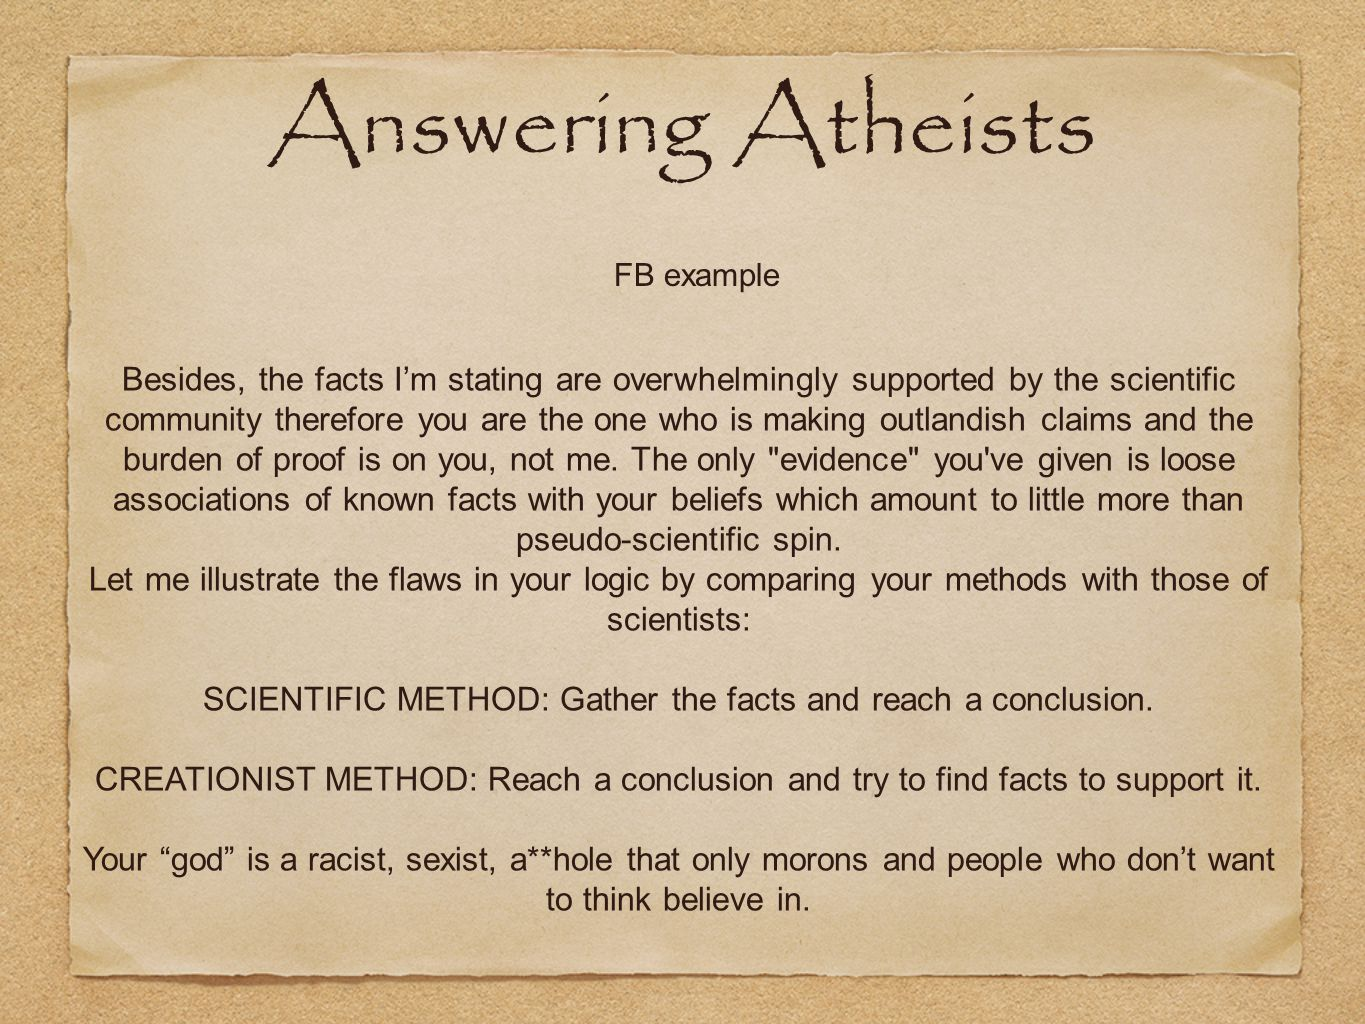 FB example Answering Atheists Besides, the facts I'm stating are overwhelmingly supported by the scientific community therefore you are the one who is making outlandish claims and the burden of proof is on you, not me.